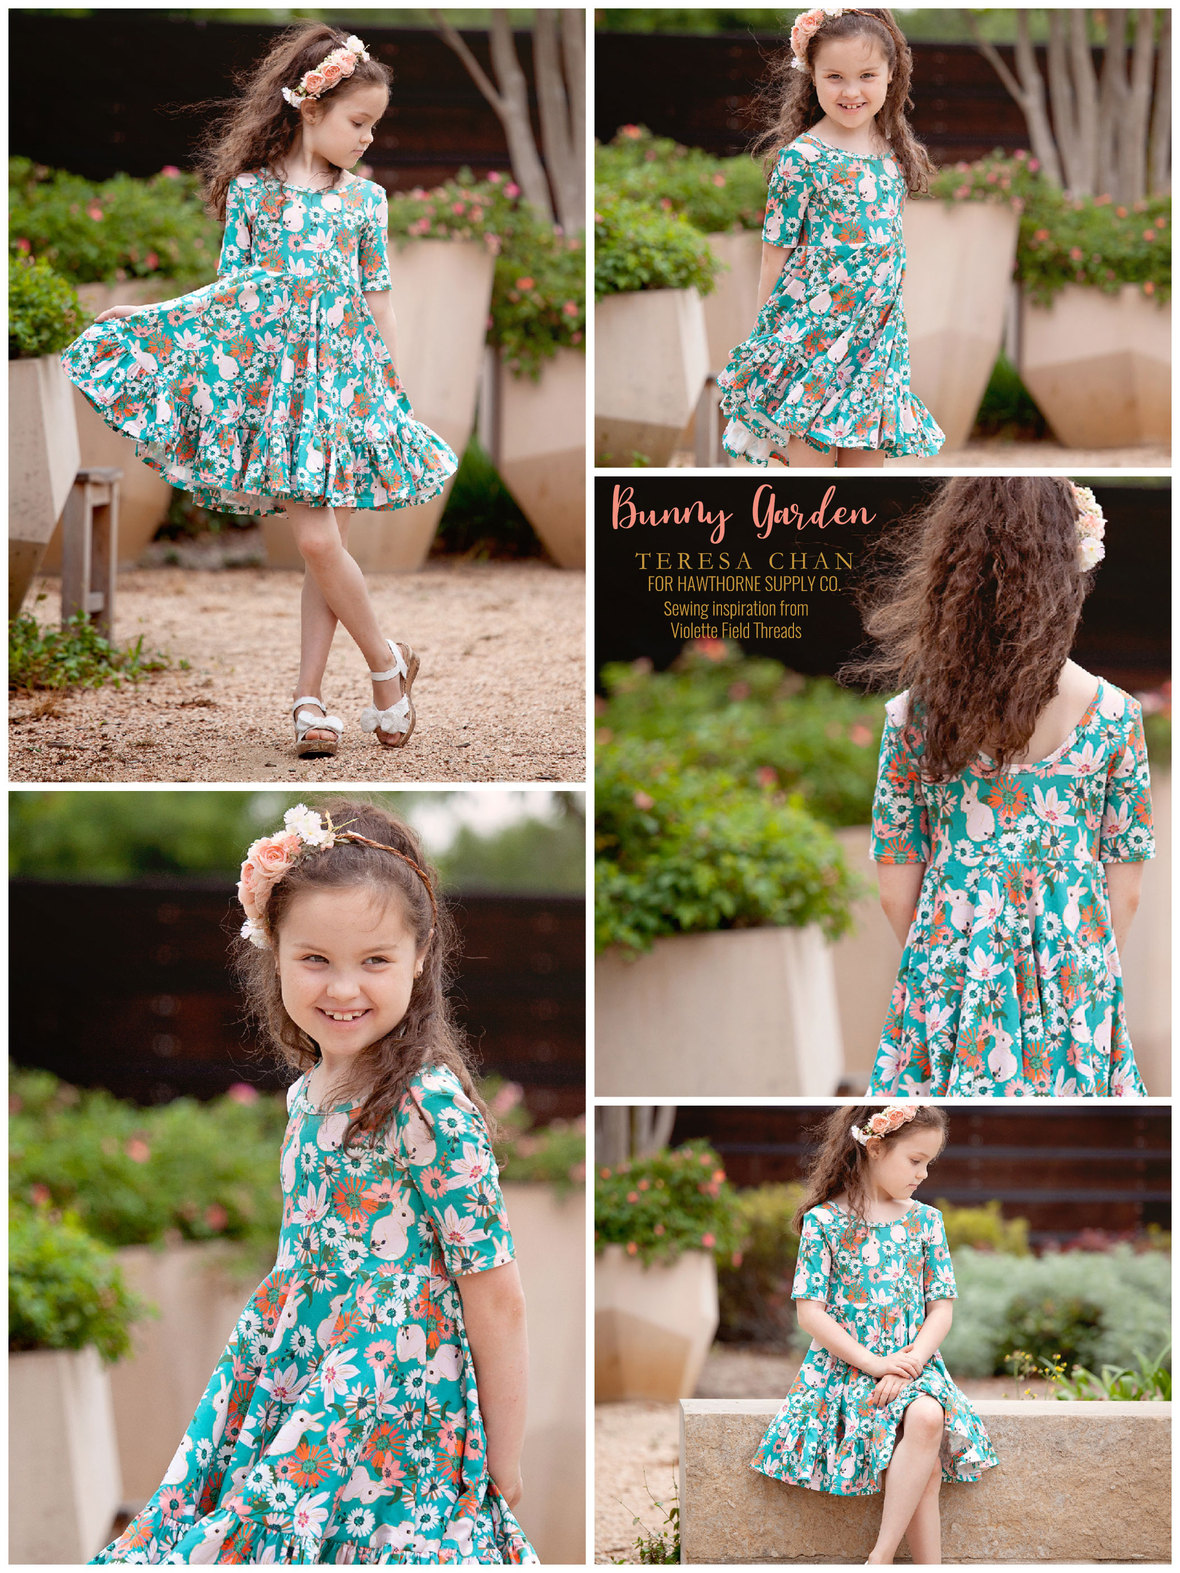 Ashley-Cowan-Bunny-Garden-Dress-Teresa-Chan-Fabric-at-Hawthorne-Supply-Co